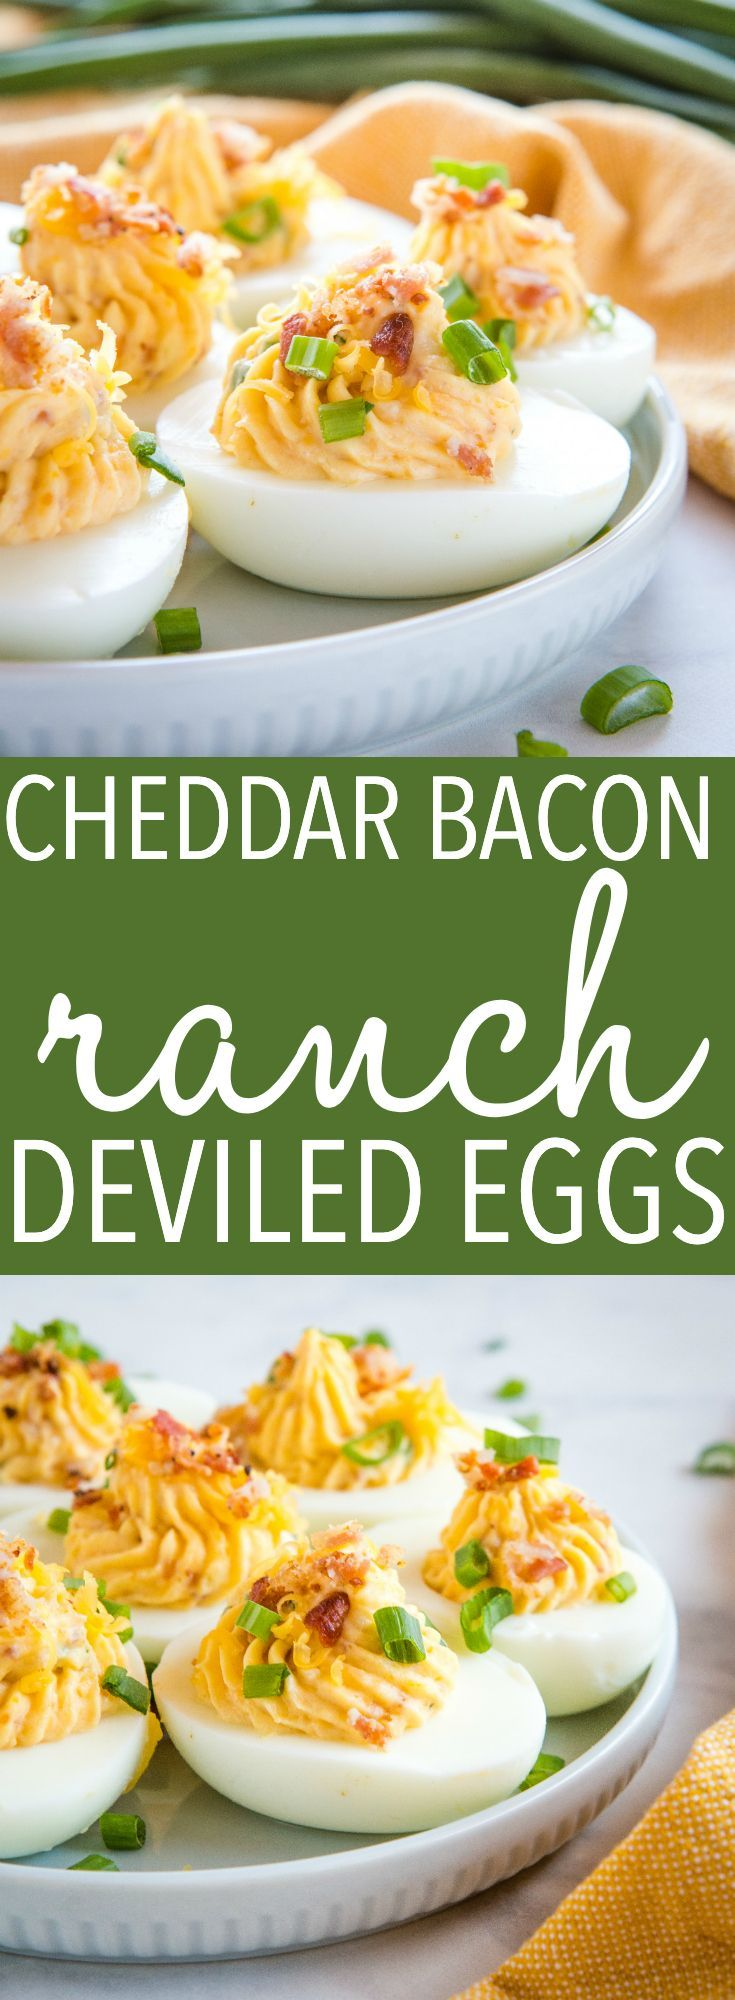 Best Ever Cheddar Bacon Ranch Deviled Eggs - -